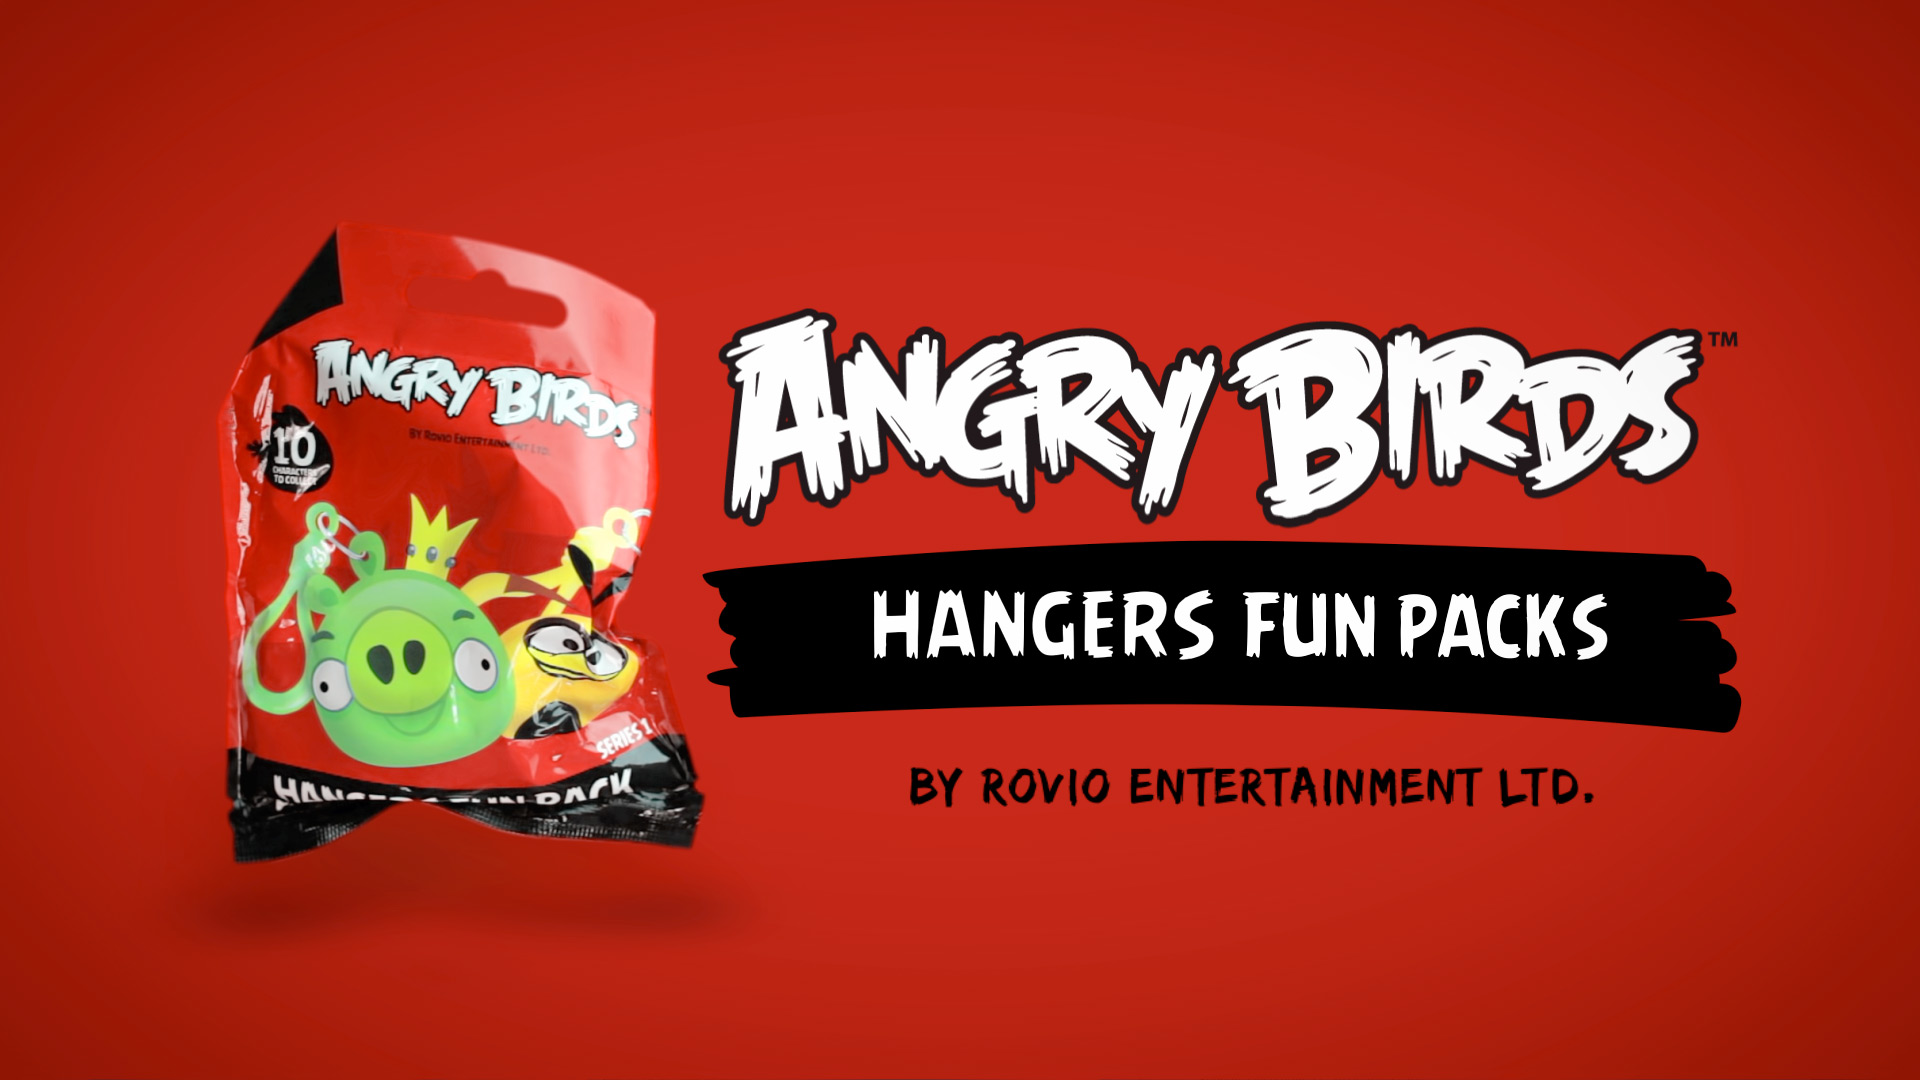 Angry Birds | Hangers Fun Packs Commercial